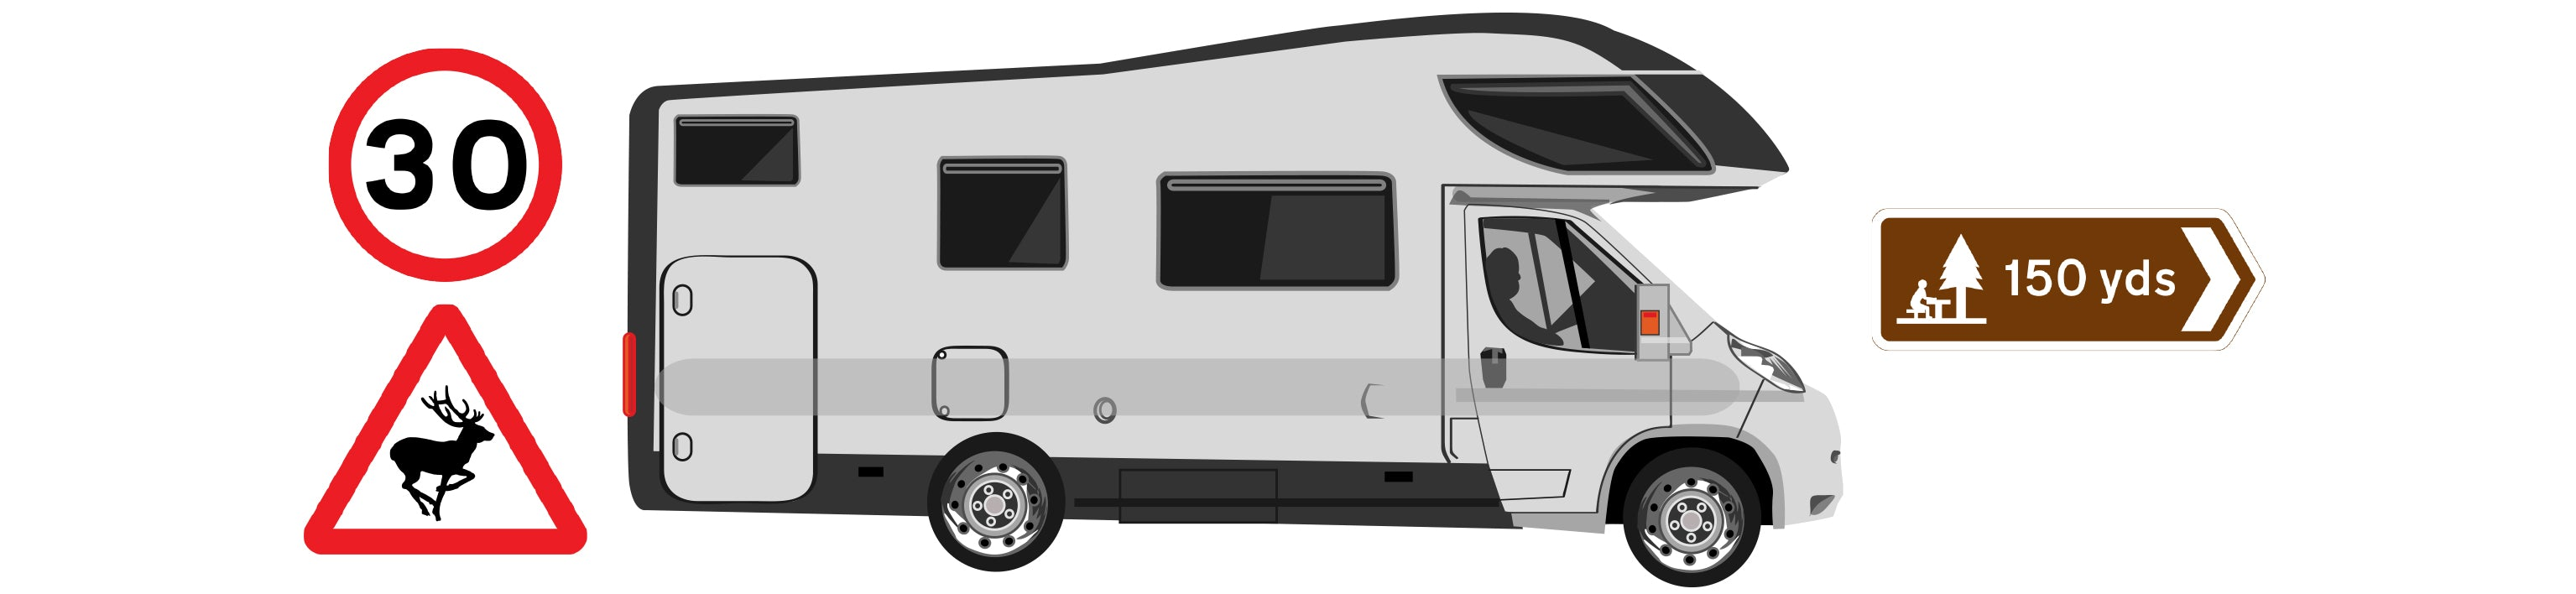 Illustration of car towing caravan